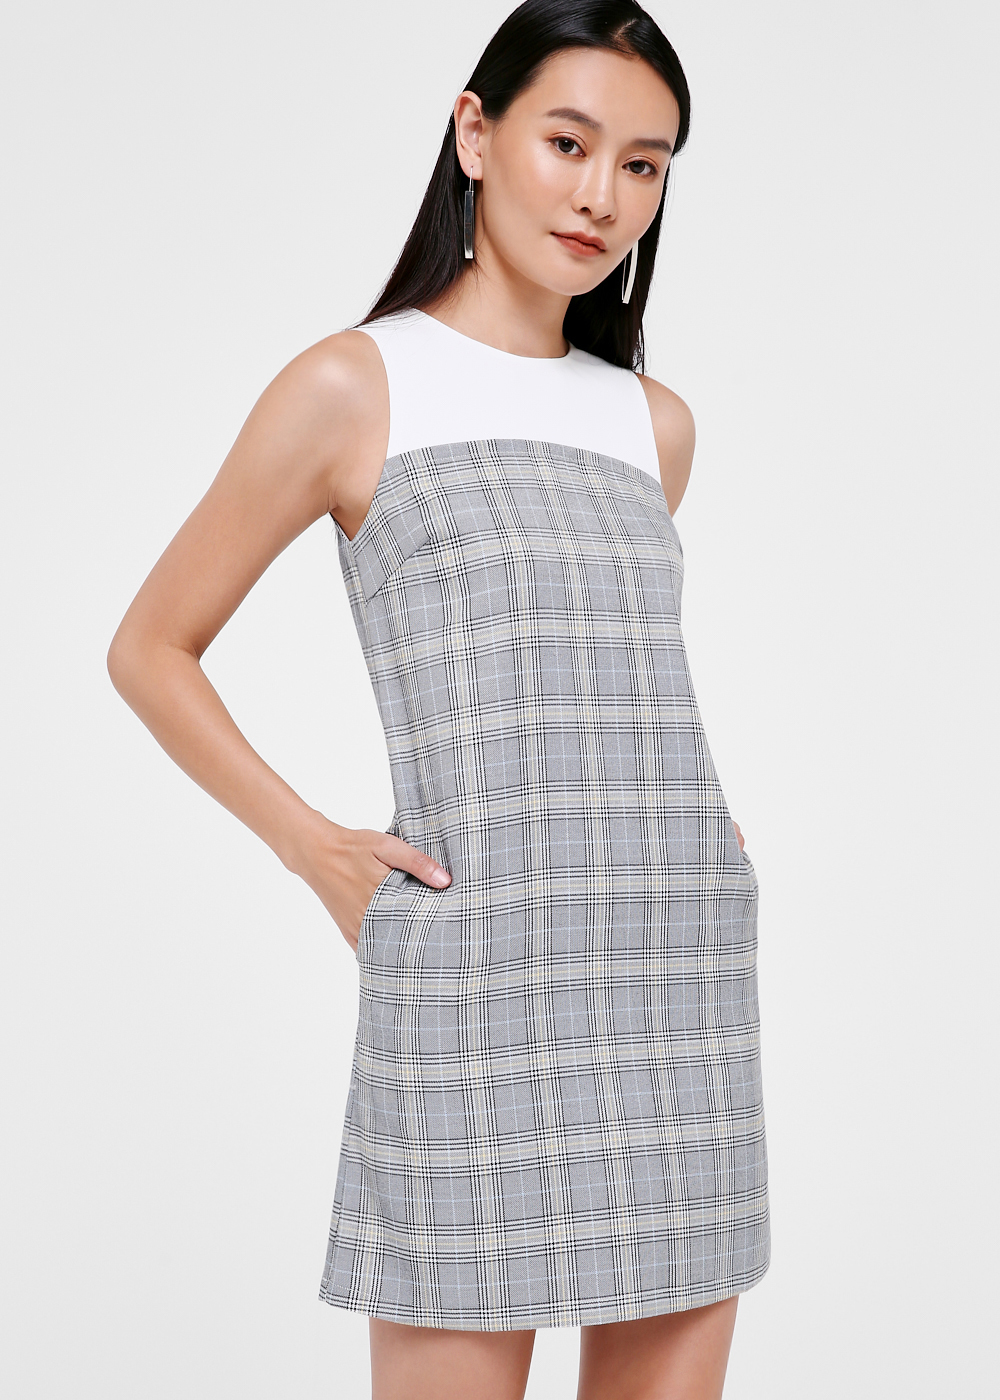 Katalina Plaid Shift Dress